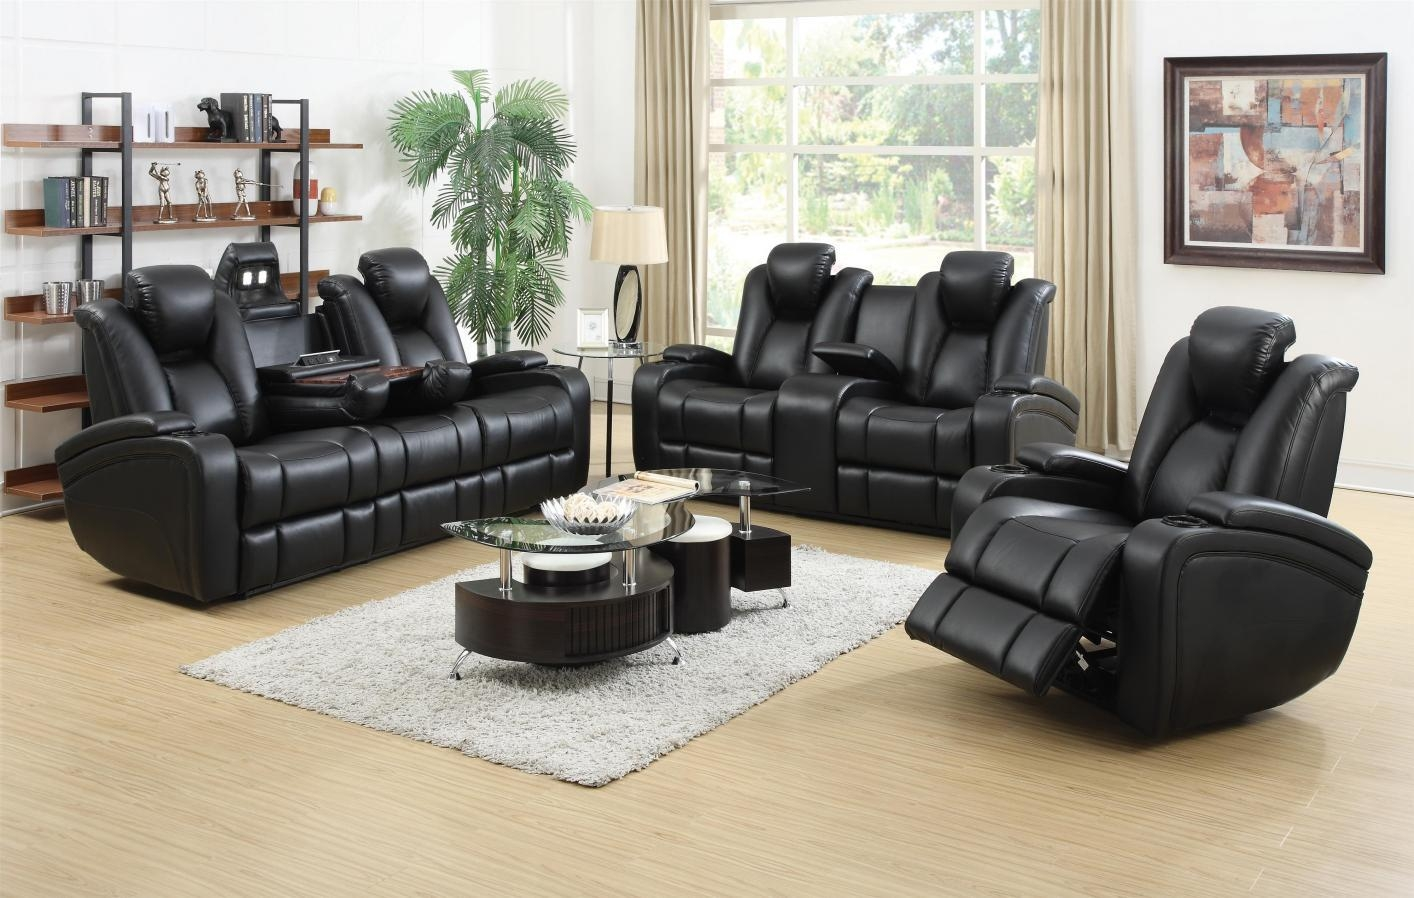 Black Leather Power Reclining Sofa And Loveseat Set – Steal A Sofa With Black Leather Sofas And Loveseat Sets (View 8 of 20)